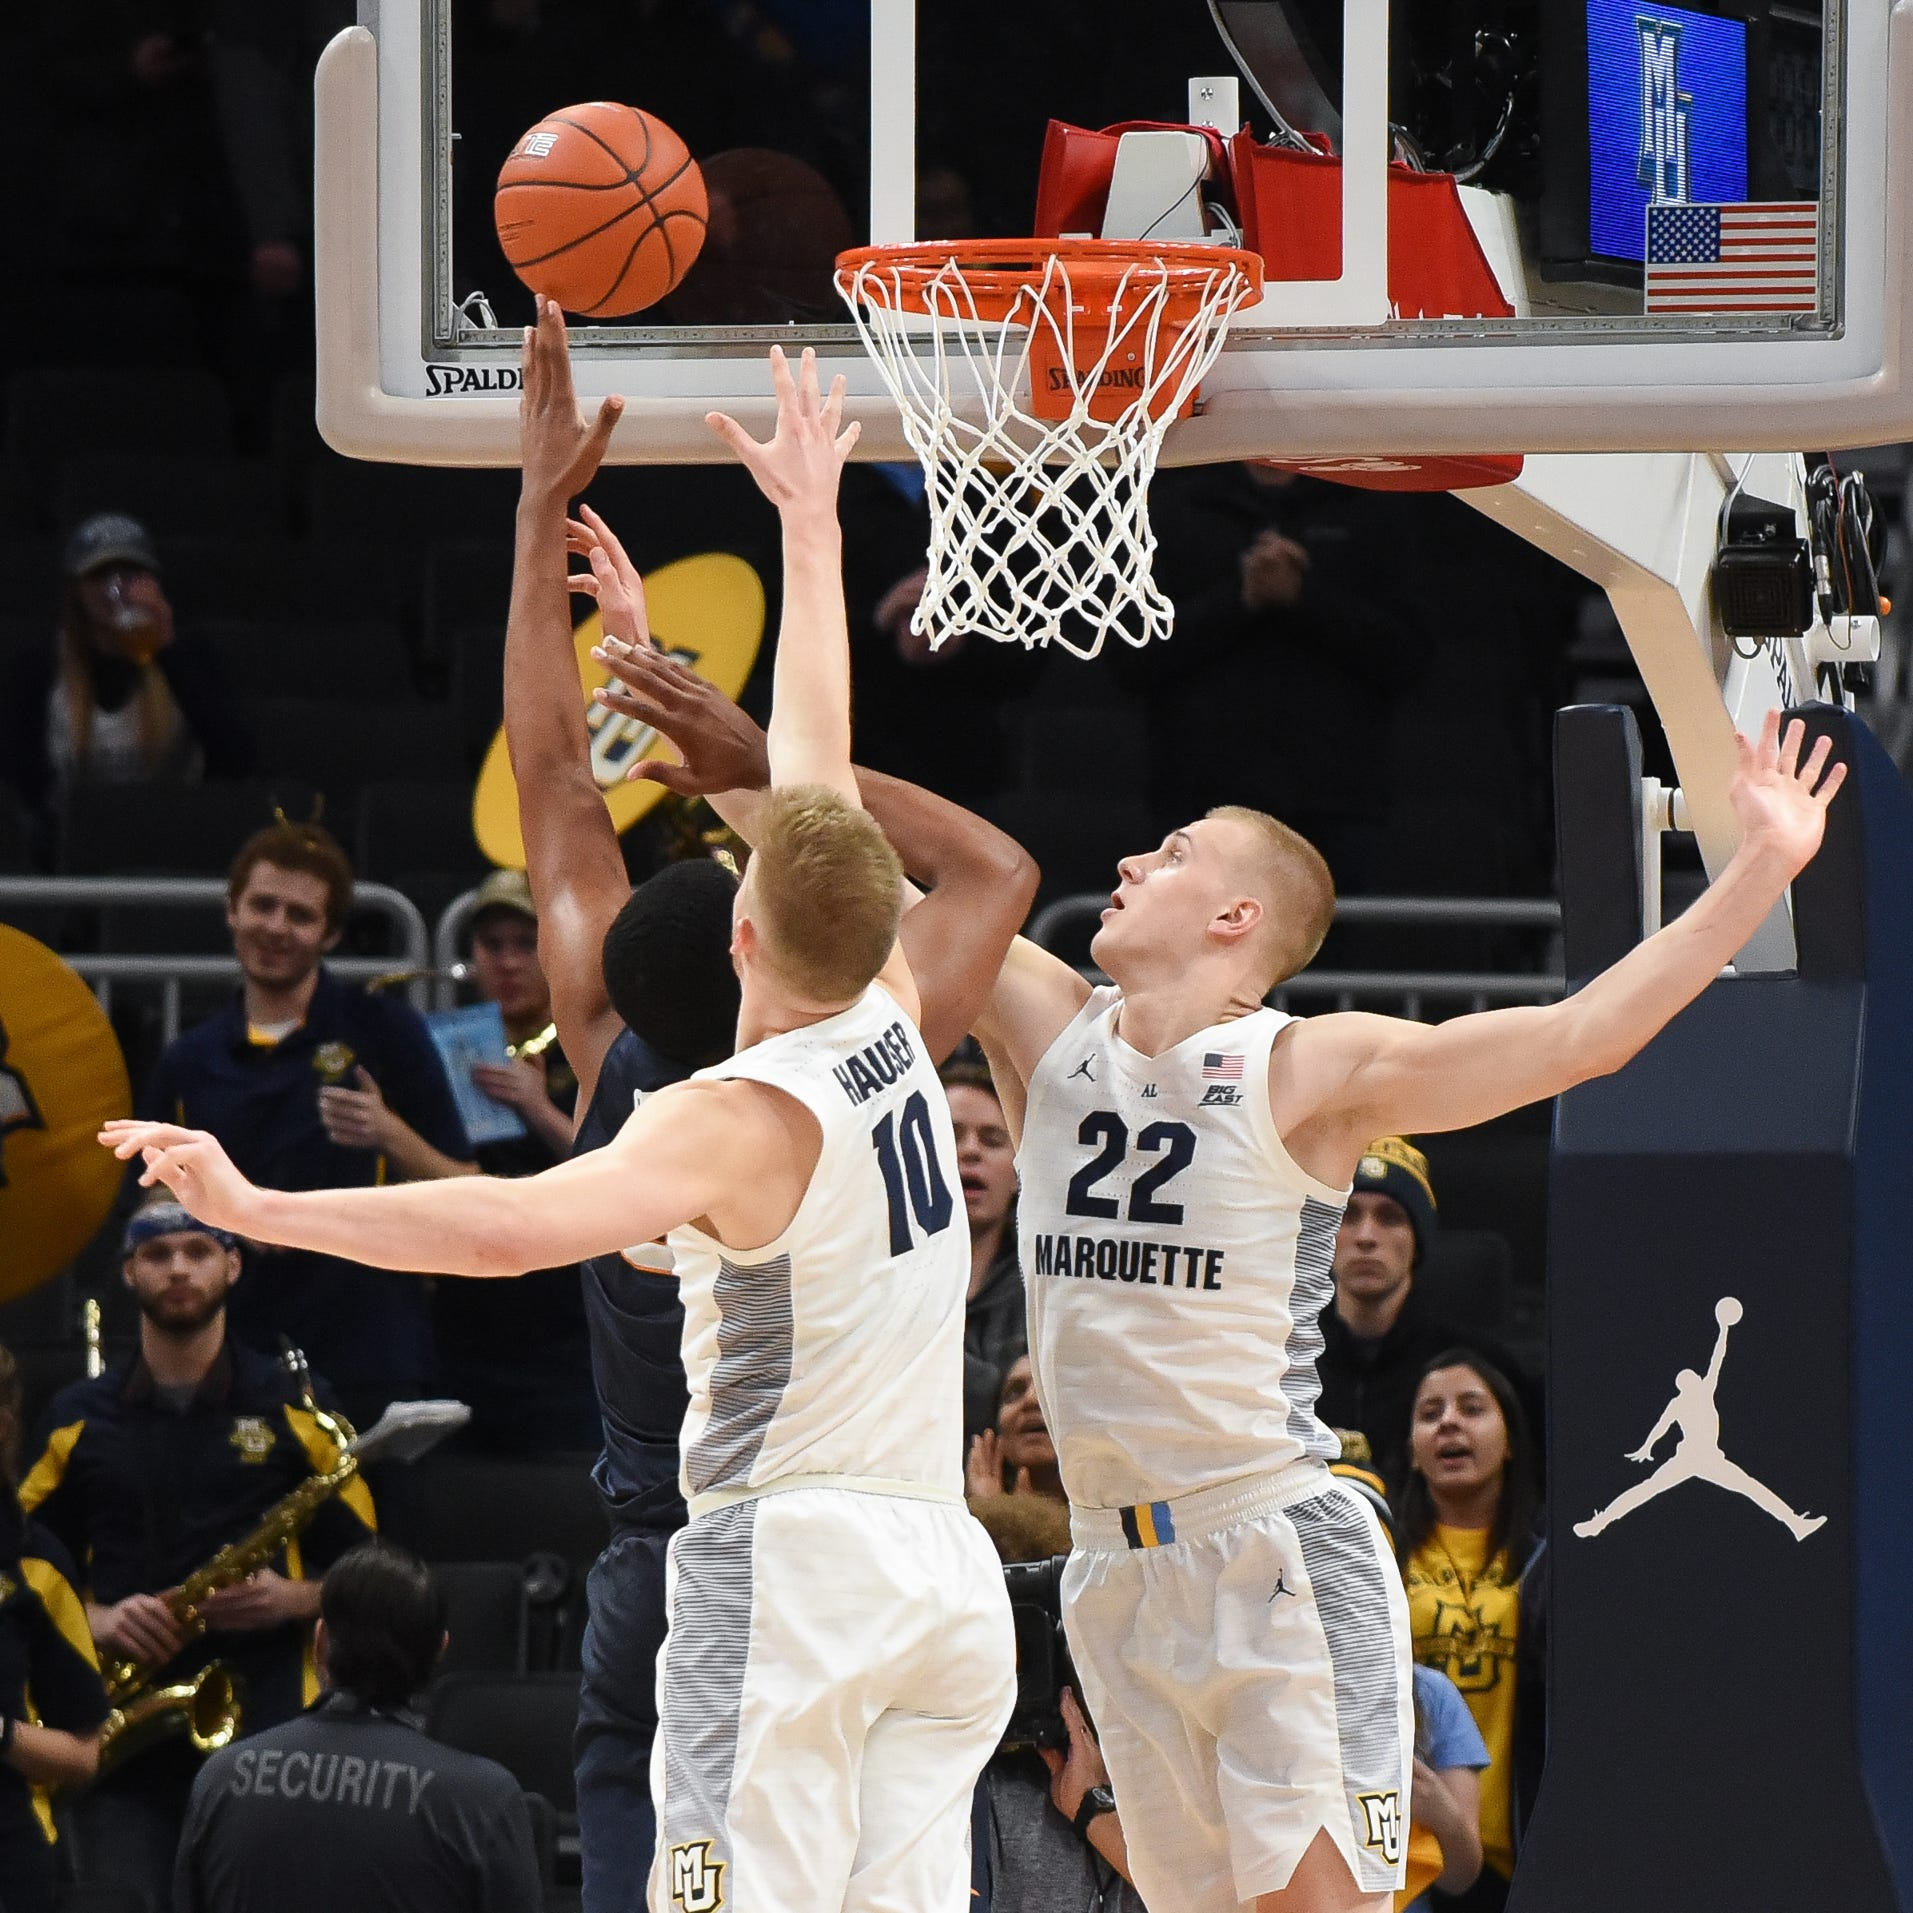 Marquette's Hauser brothers and UW's Trevor Anderson are lifelong friends. Now they are on opposite sides of a heated rivalry.